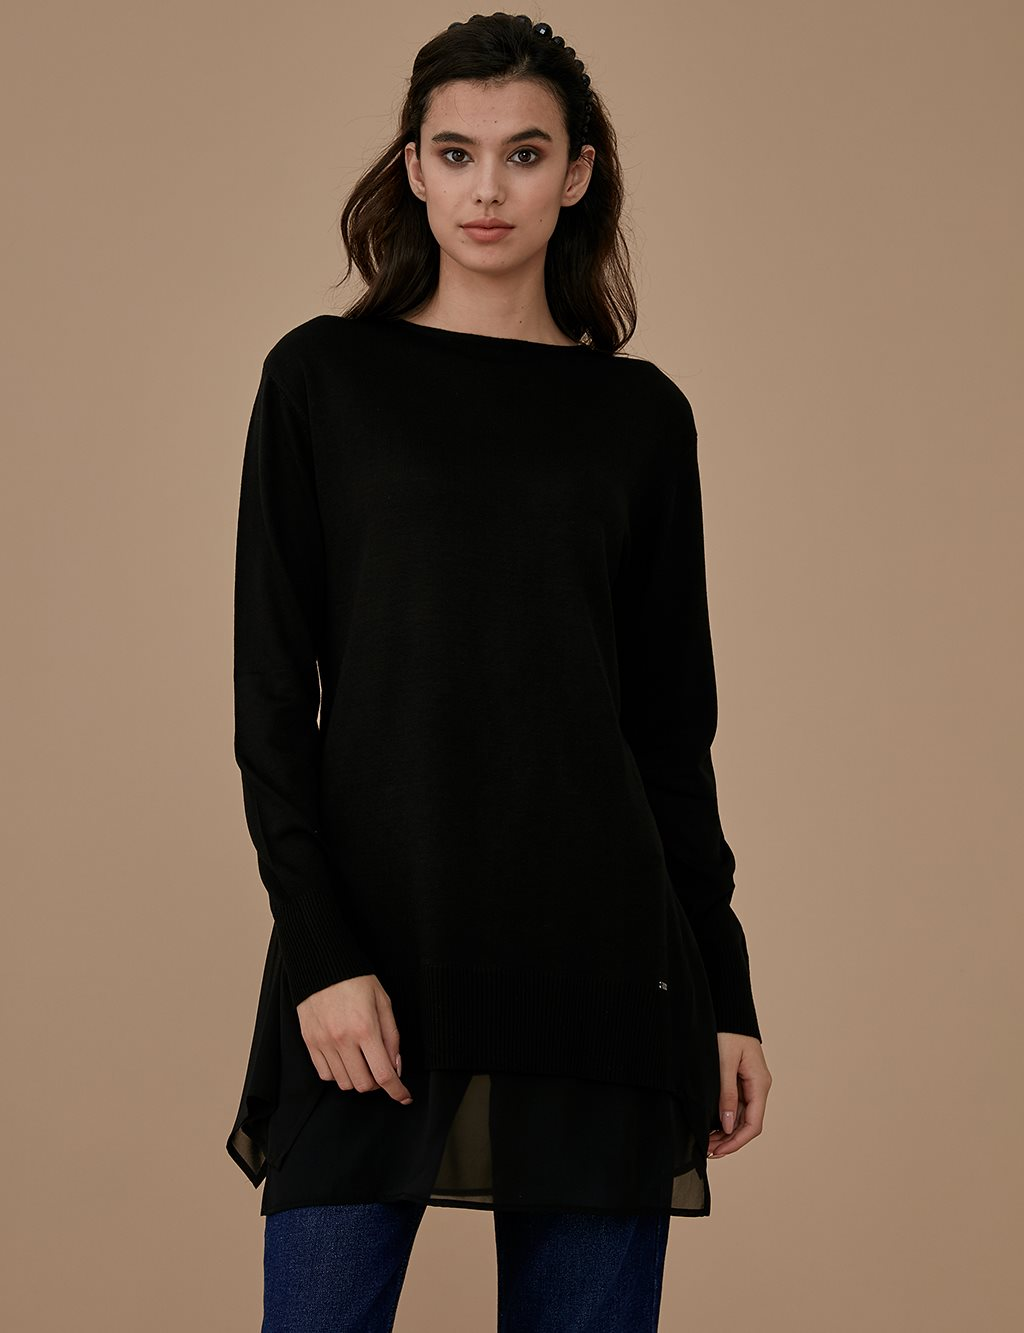 Chiffon Detailed Knitwear Tunic A9 TRK46 Black